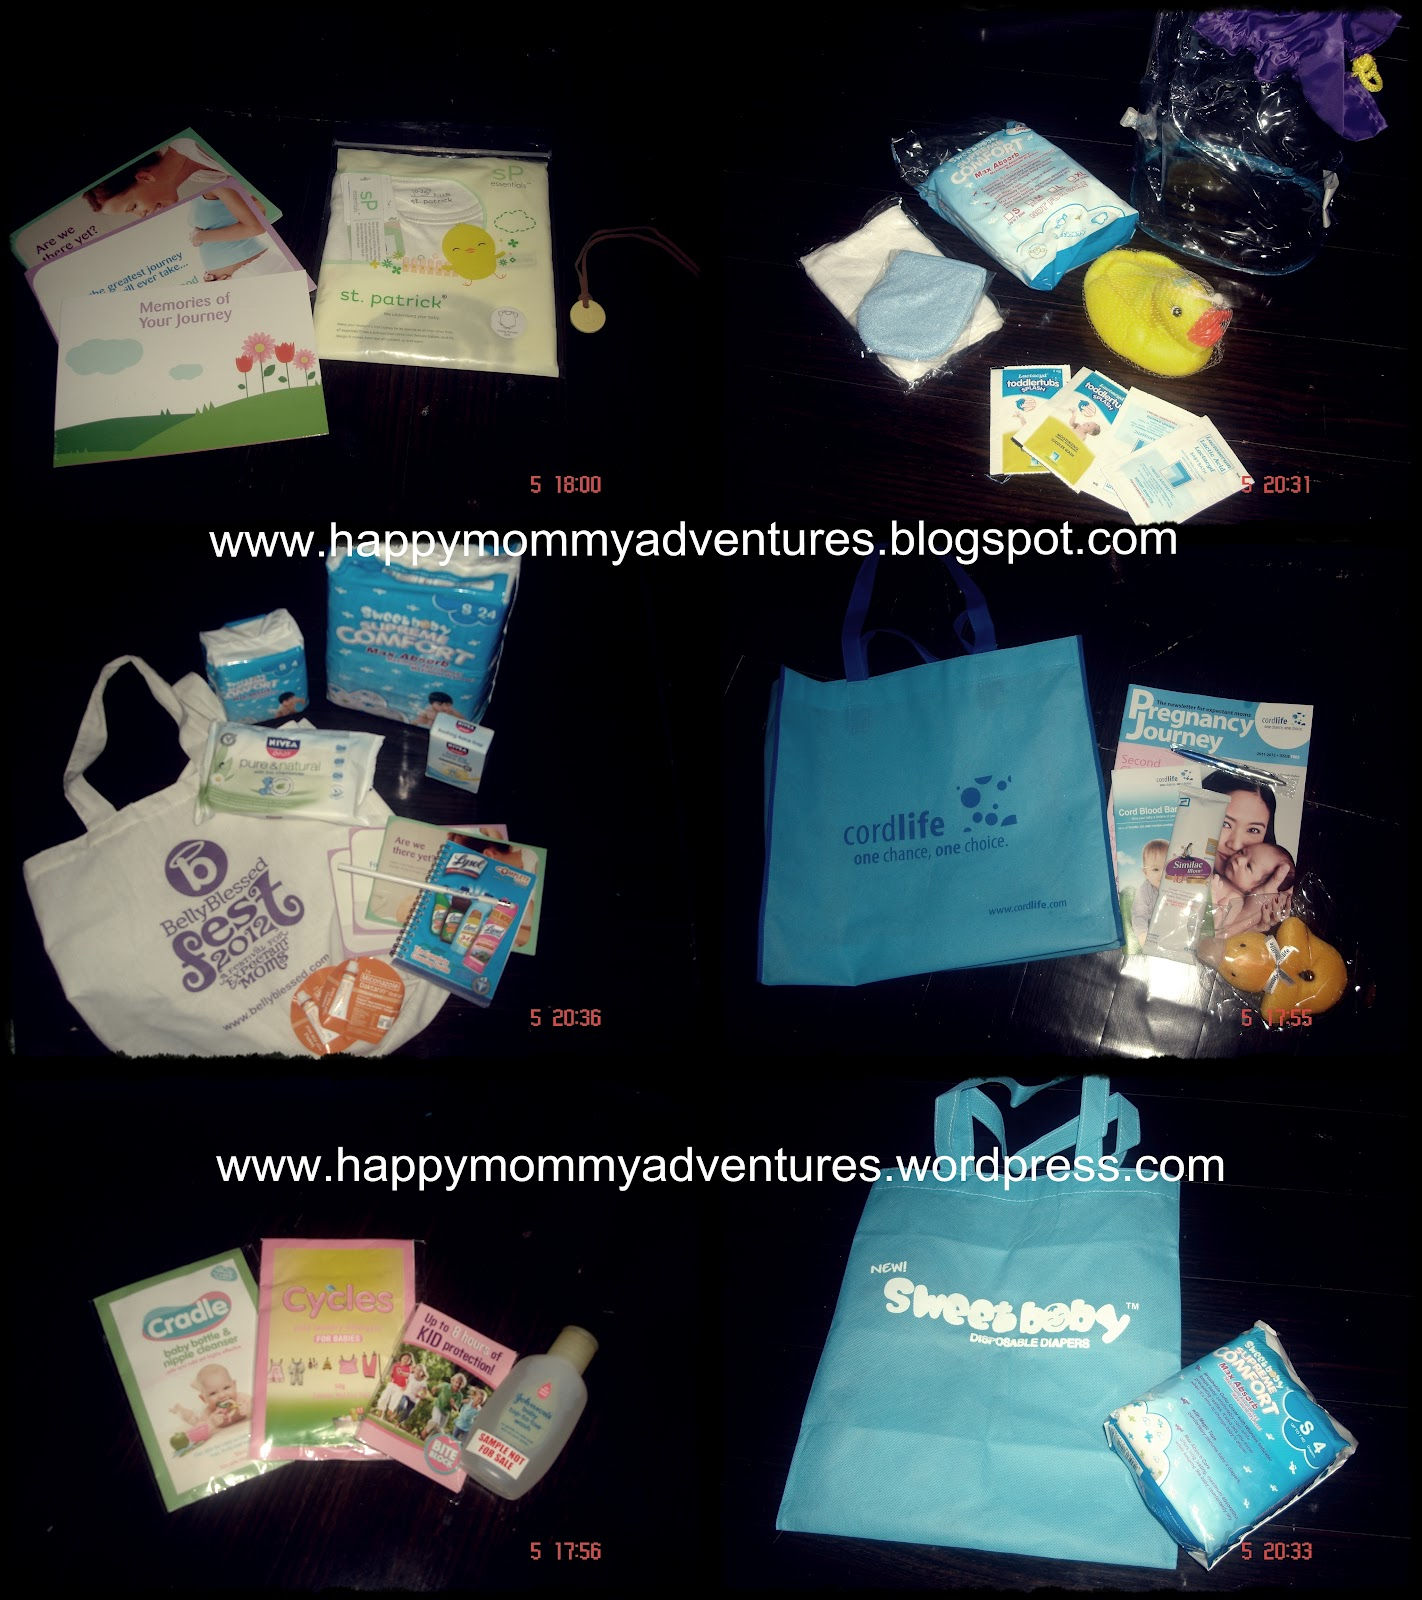 Belly Blessed Swag Bag and events giveaways